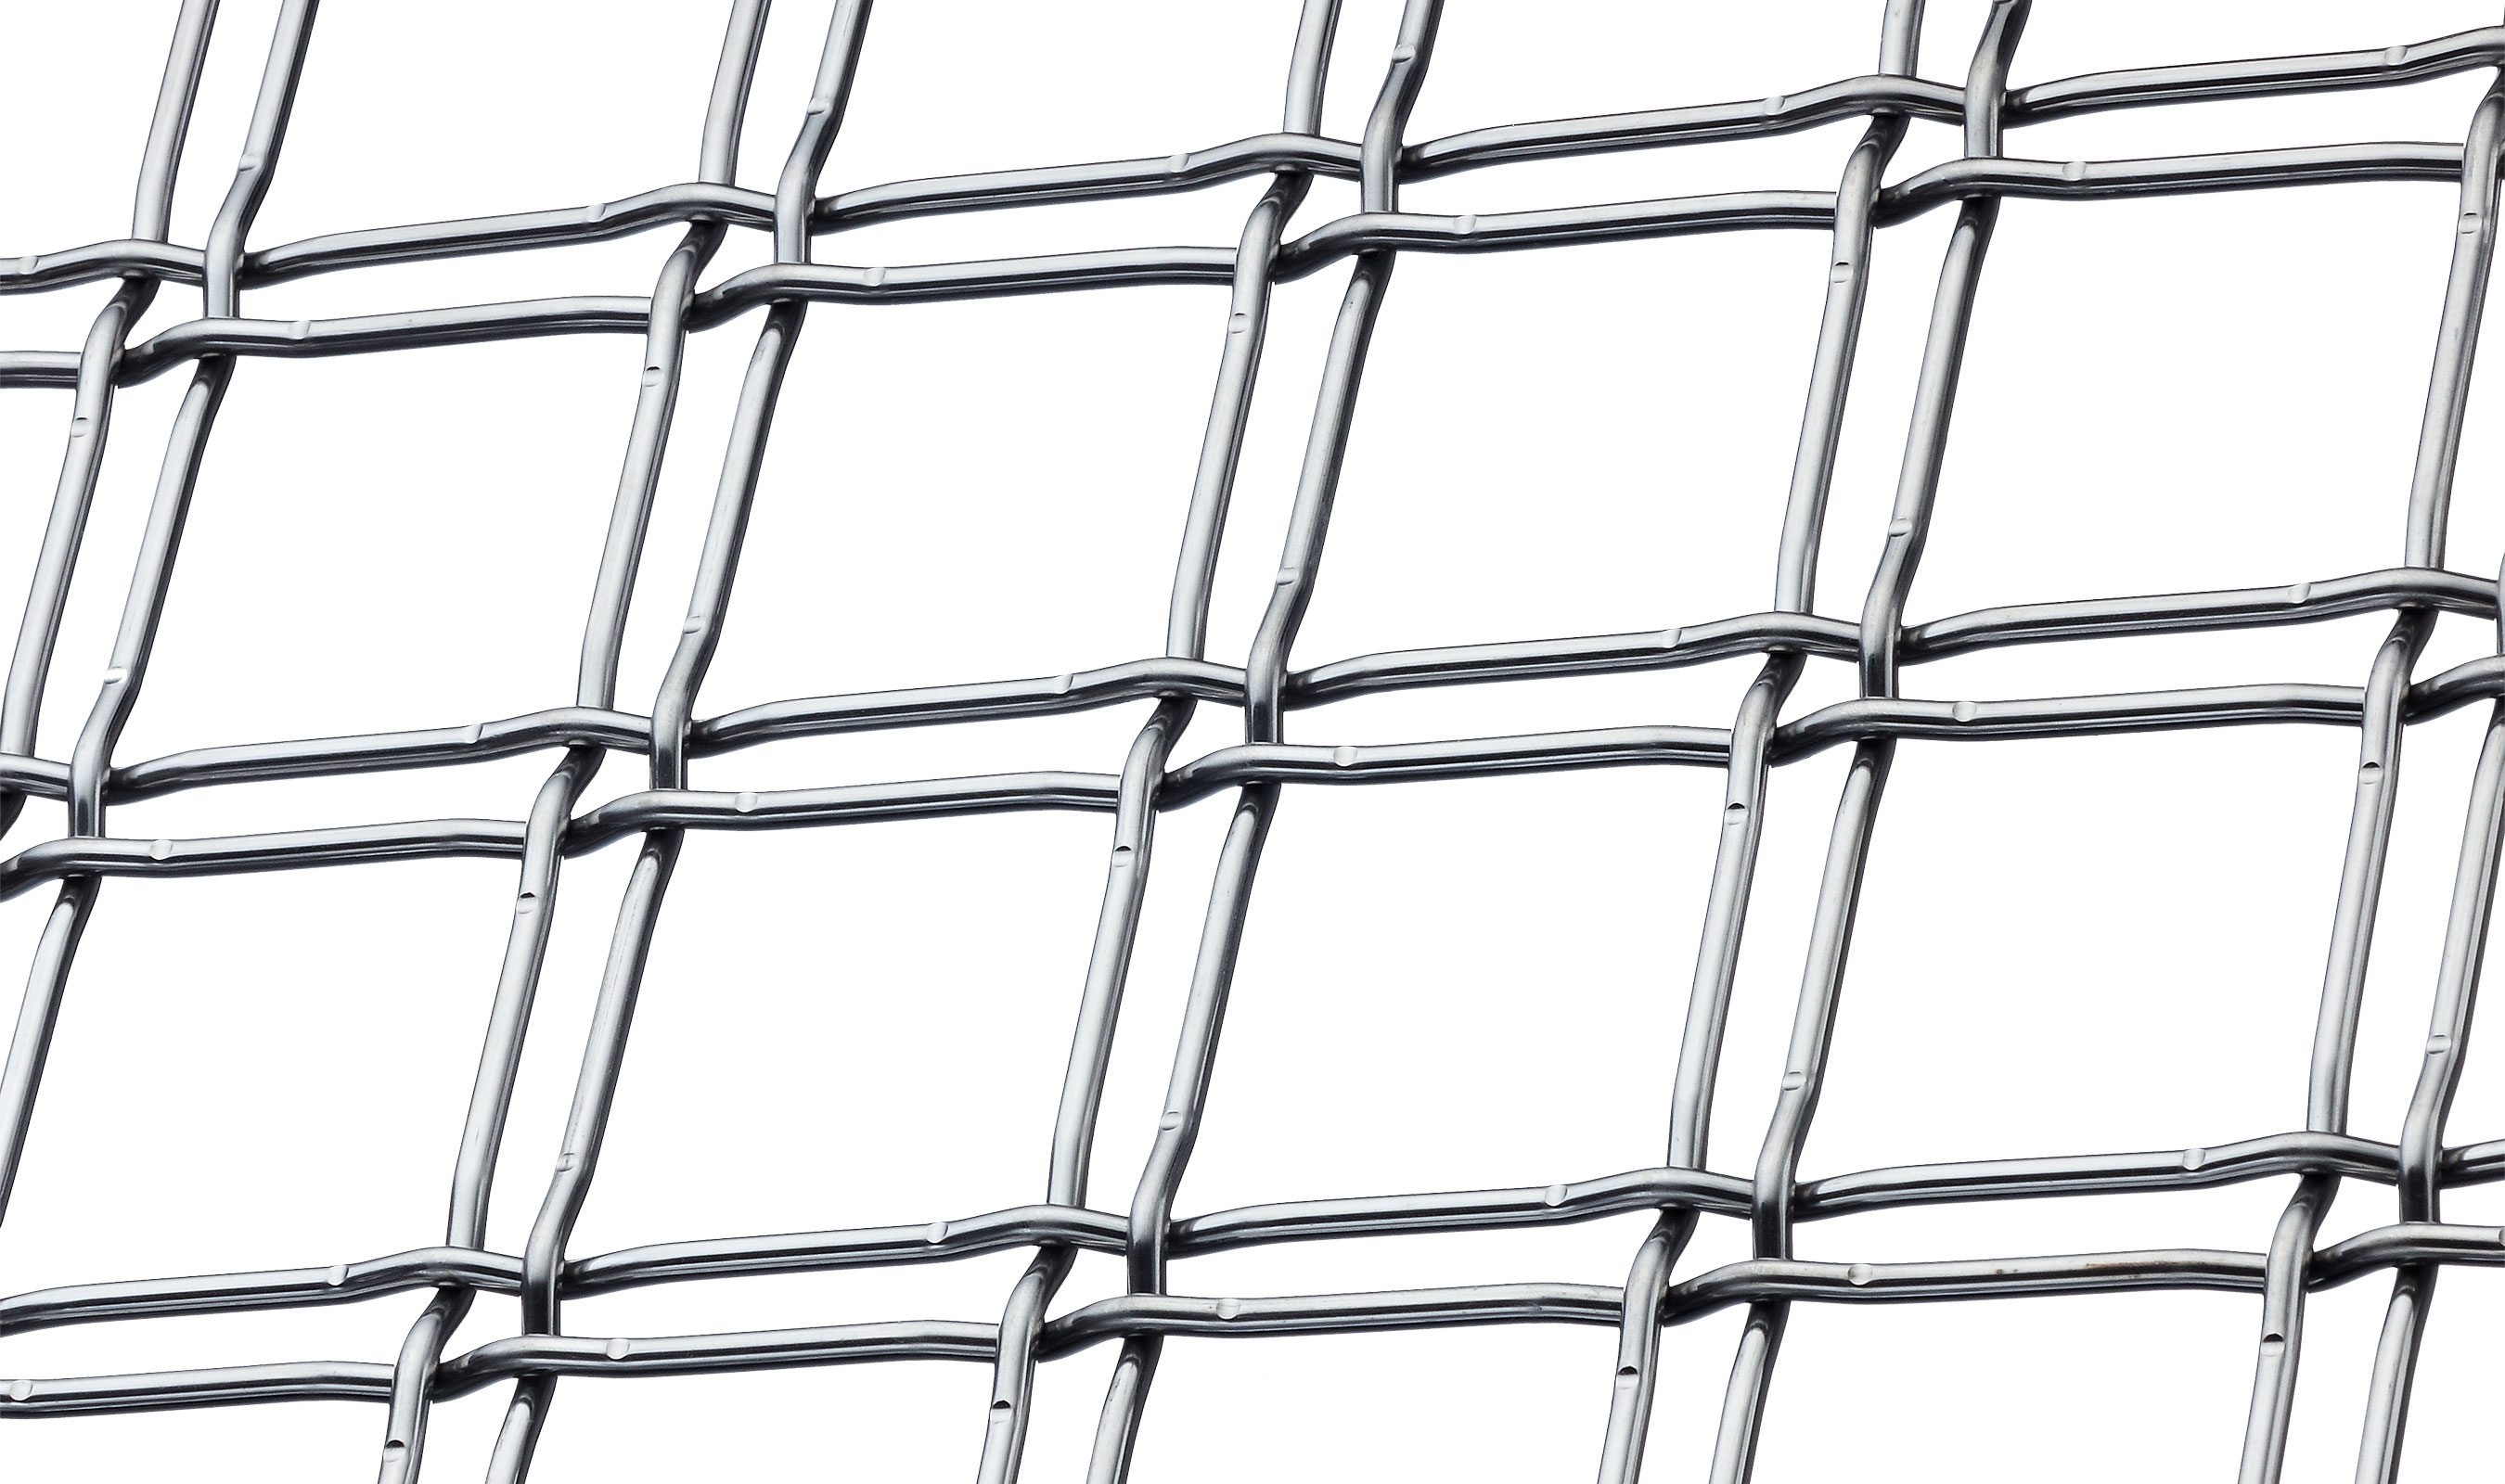 M22-27 Angle in Stainless Woven Wire Mesh